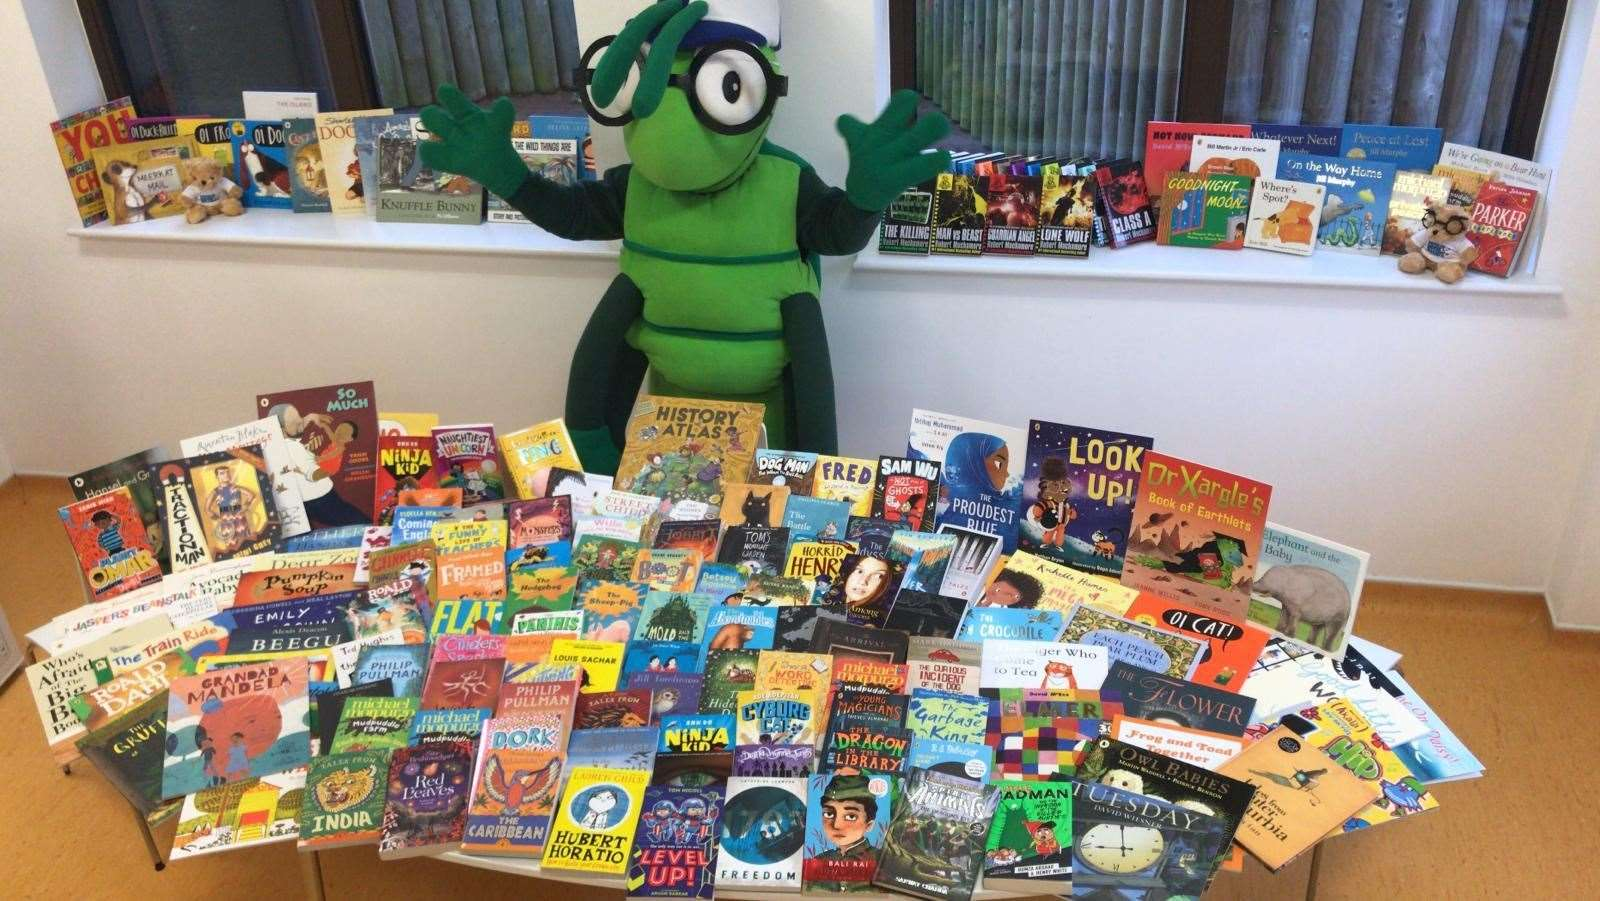 KM Charity Team mascot Buster Bug with the books donated by Scholastic Ltd.